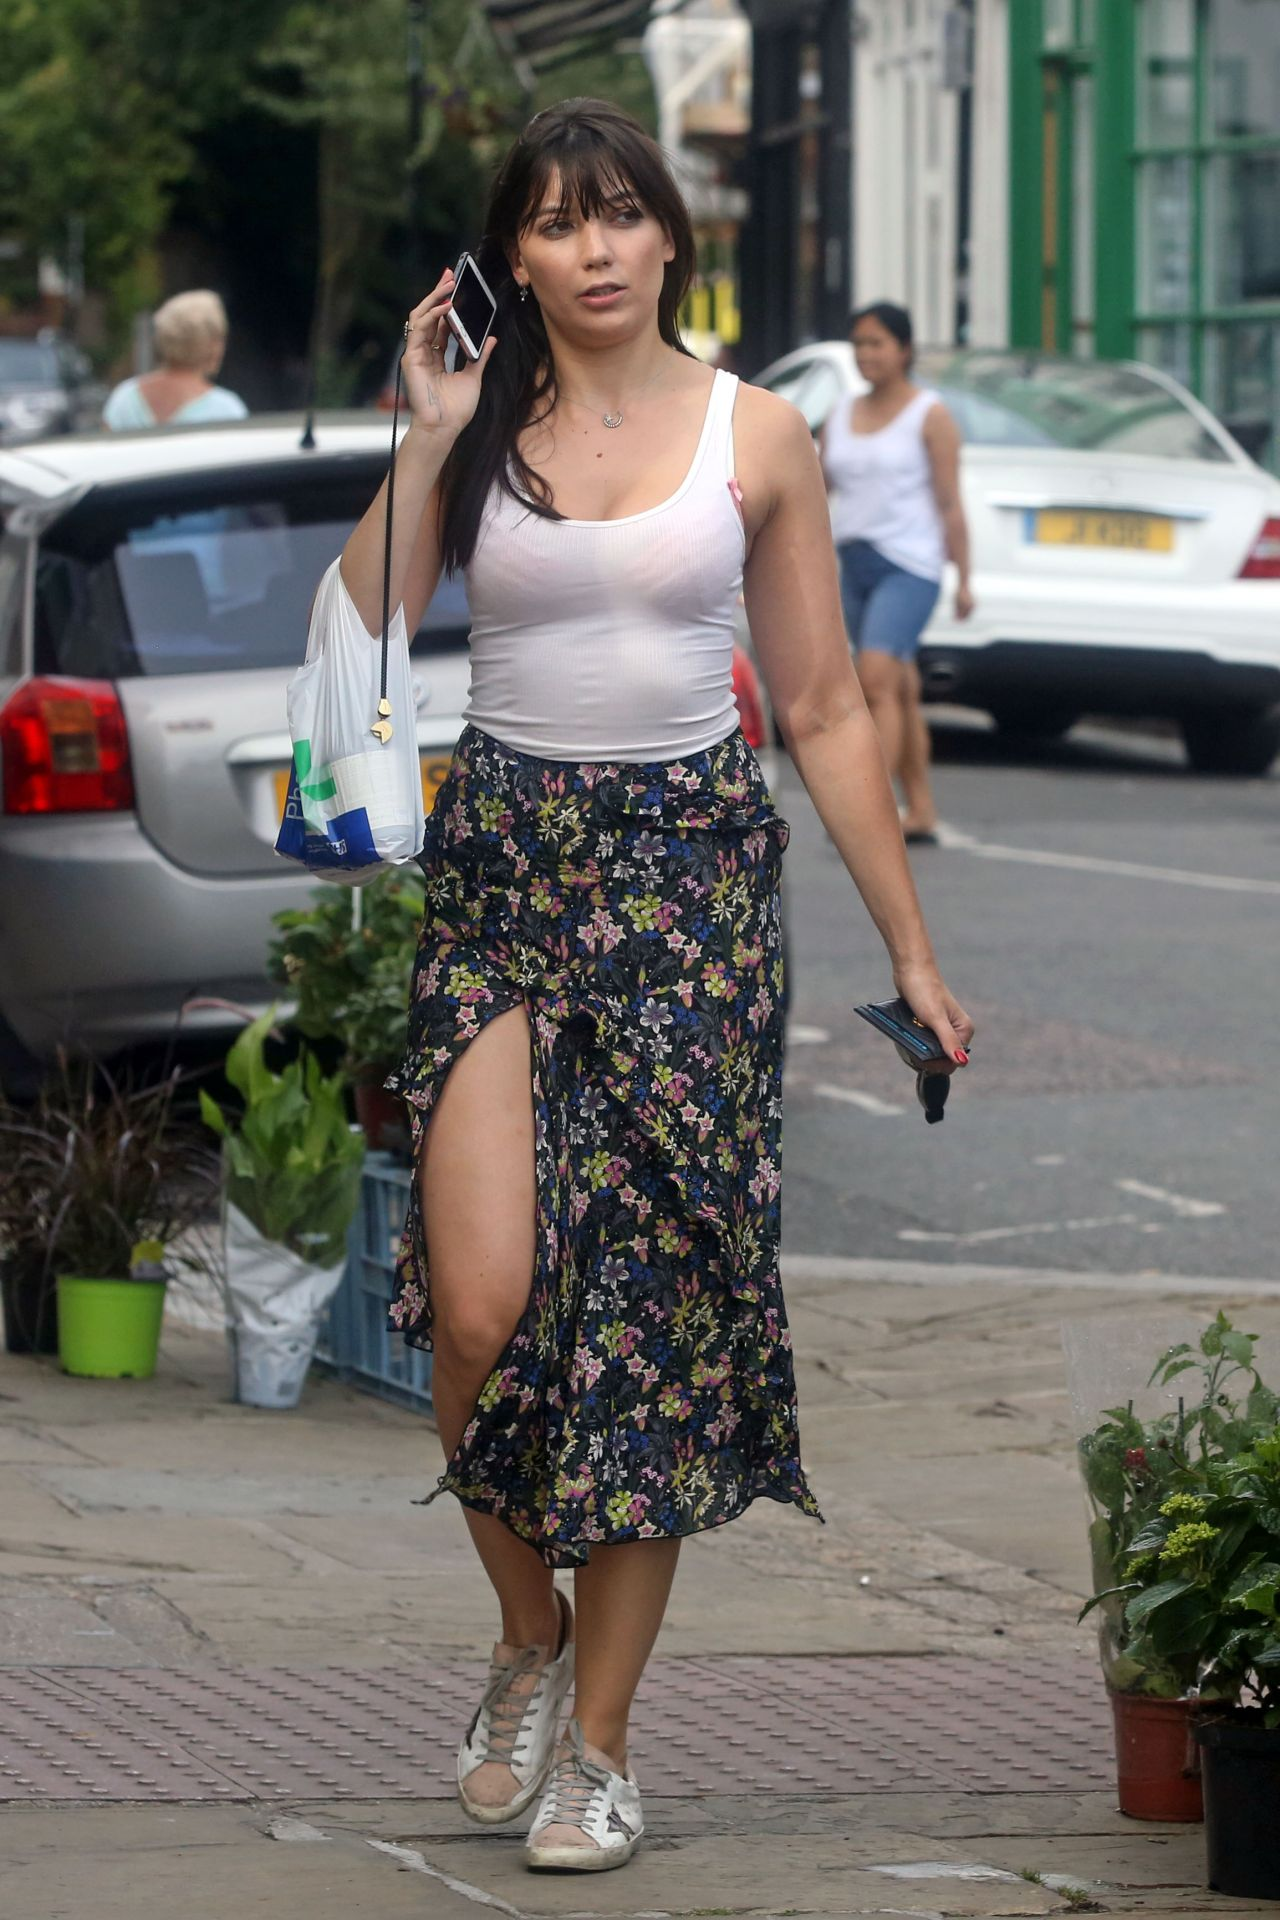 Daisy Lowe Summer Street Style Out In London 07 17 2017